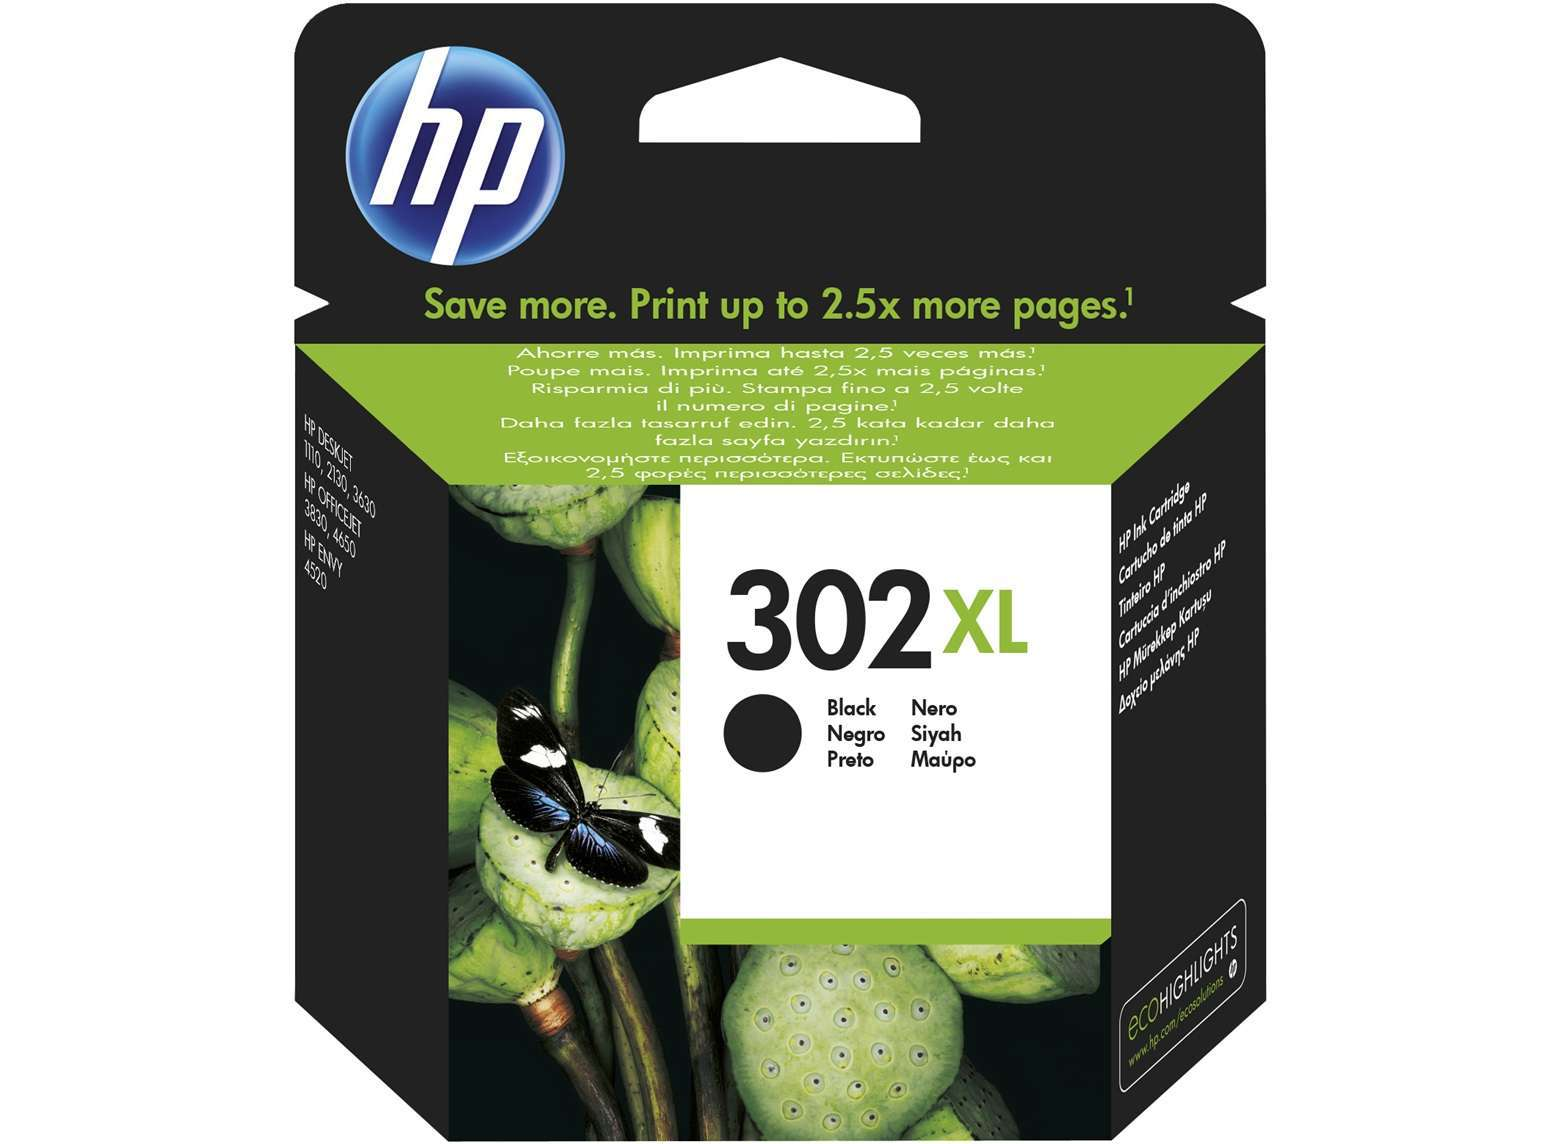 HP Original 302XL High Capacity Black Ink Cartridge (F6U68AE)